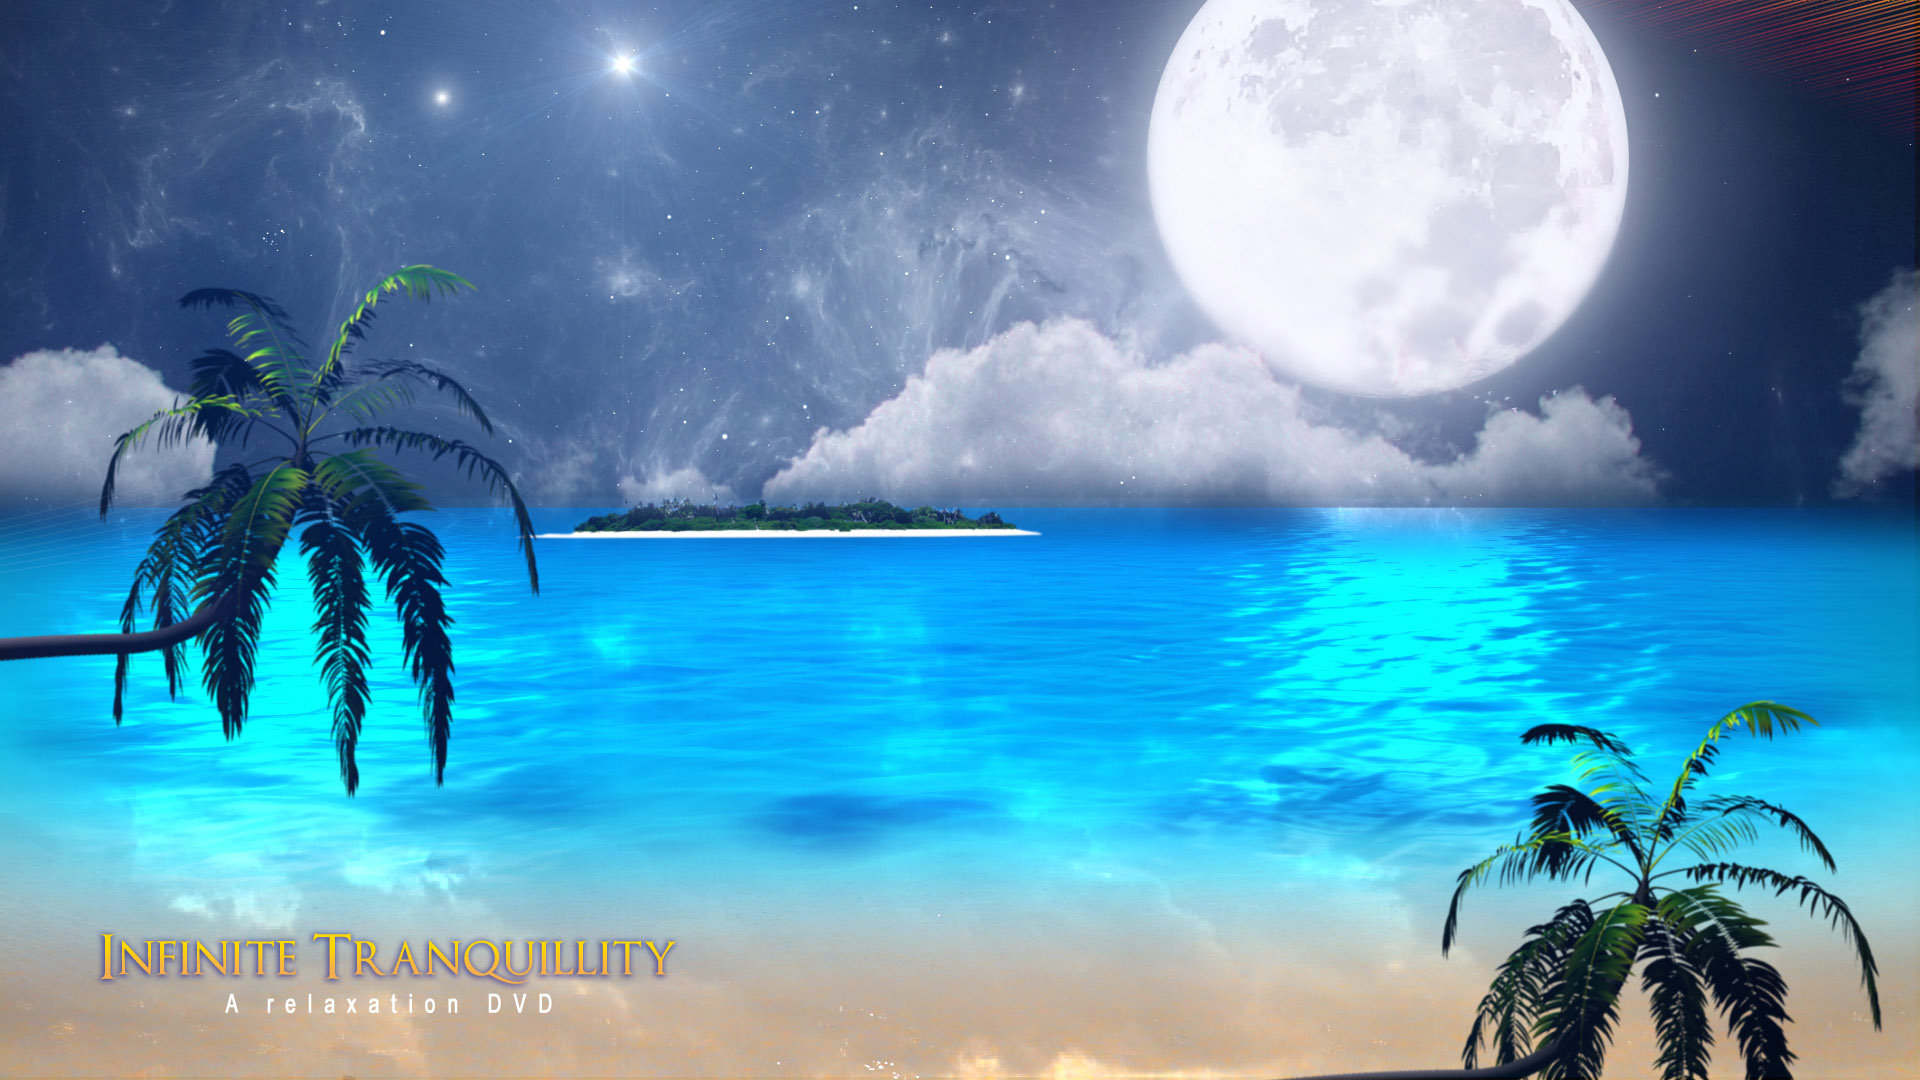 Infinite Tranquility Download relaxation wallpapers 1920x1080